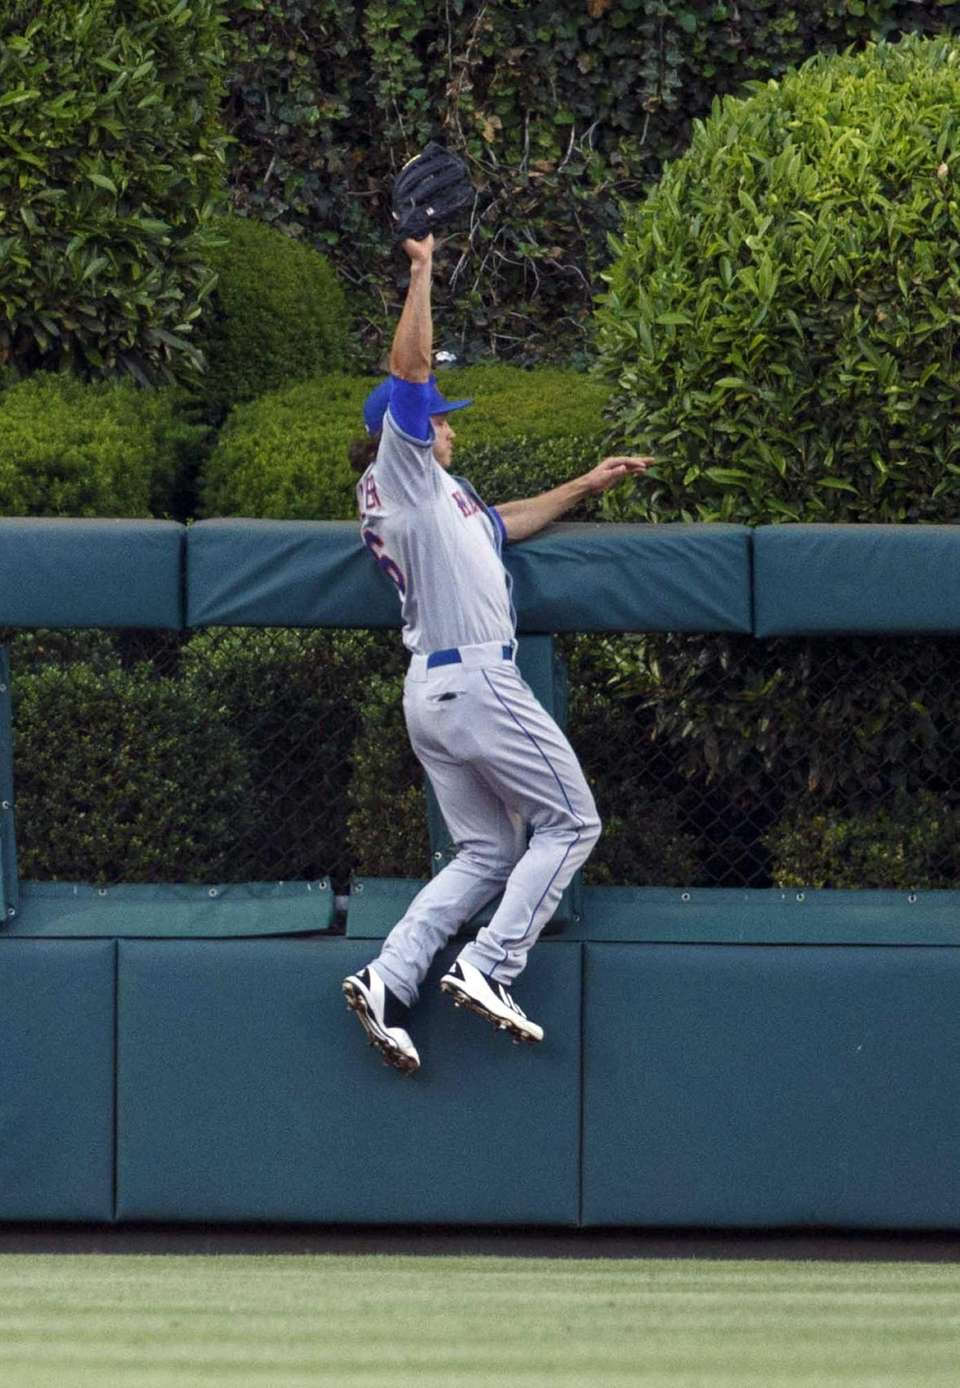 Mets centerfielder Matt den Dekker leaps to catch